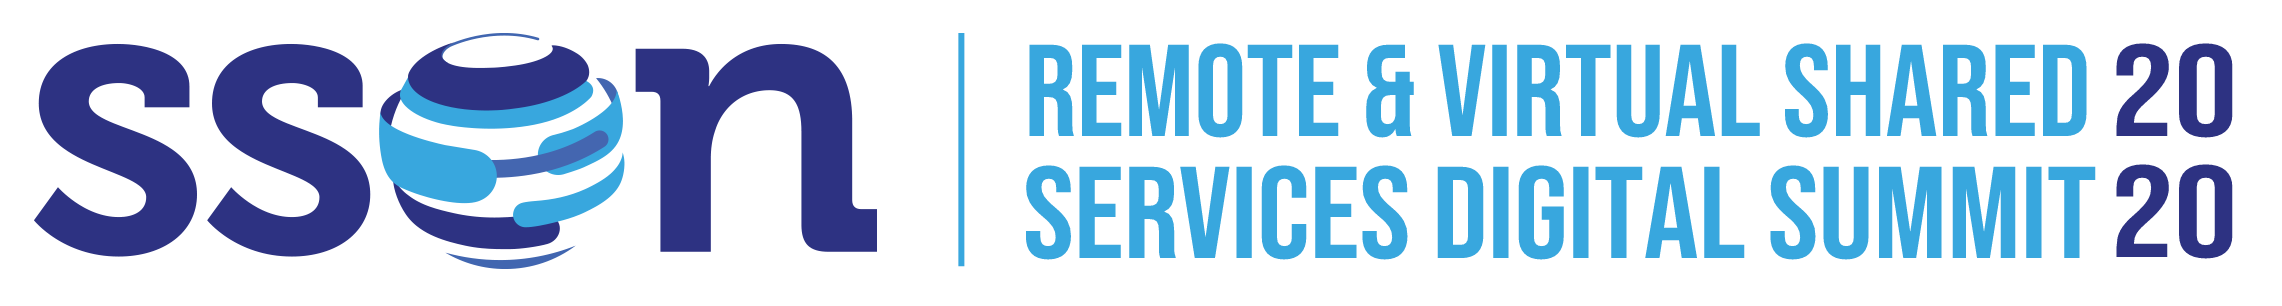 Remote & Virtual Shared Services Summit